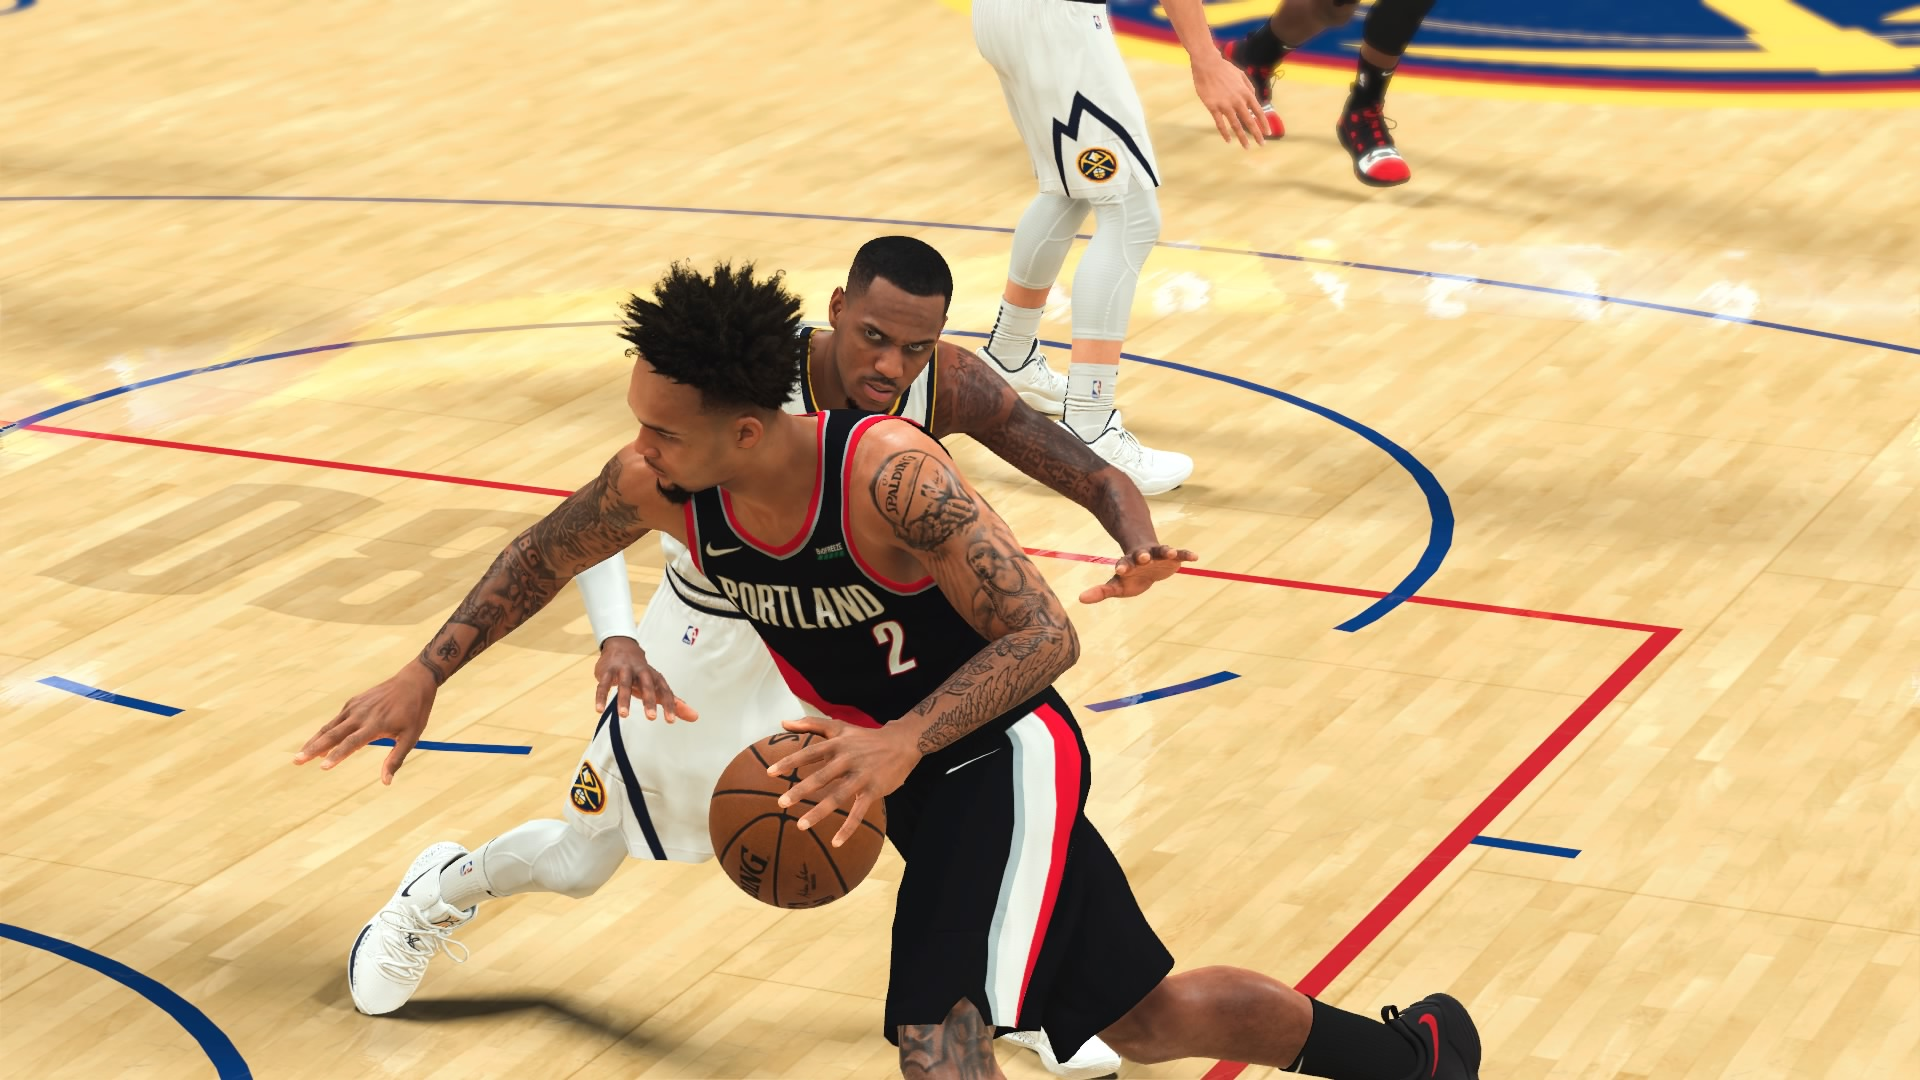 NBA 2K21 Update 1.003 Patch Notes Confirmed For PS5, Includes Tons Of Fixes